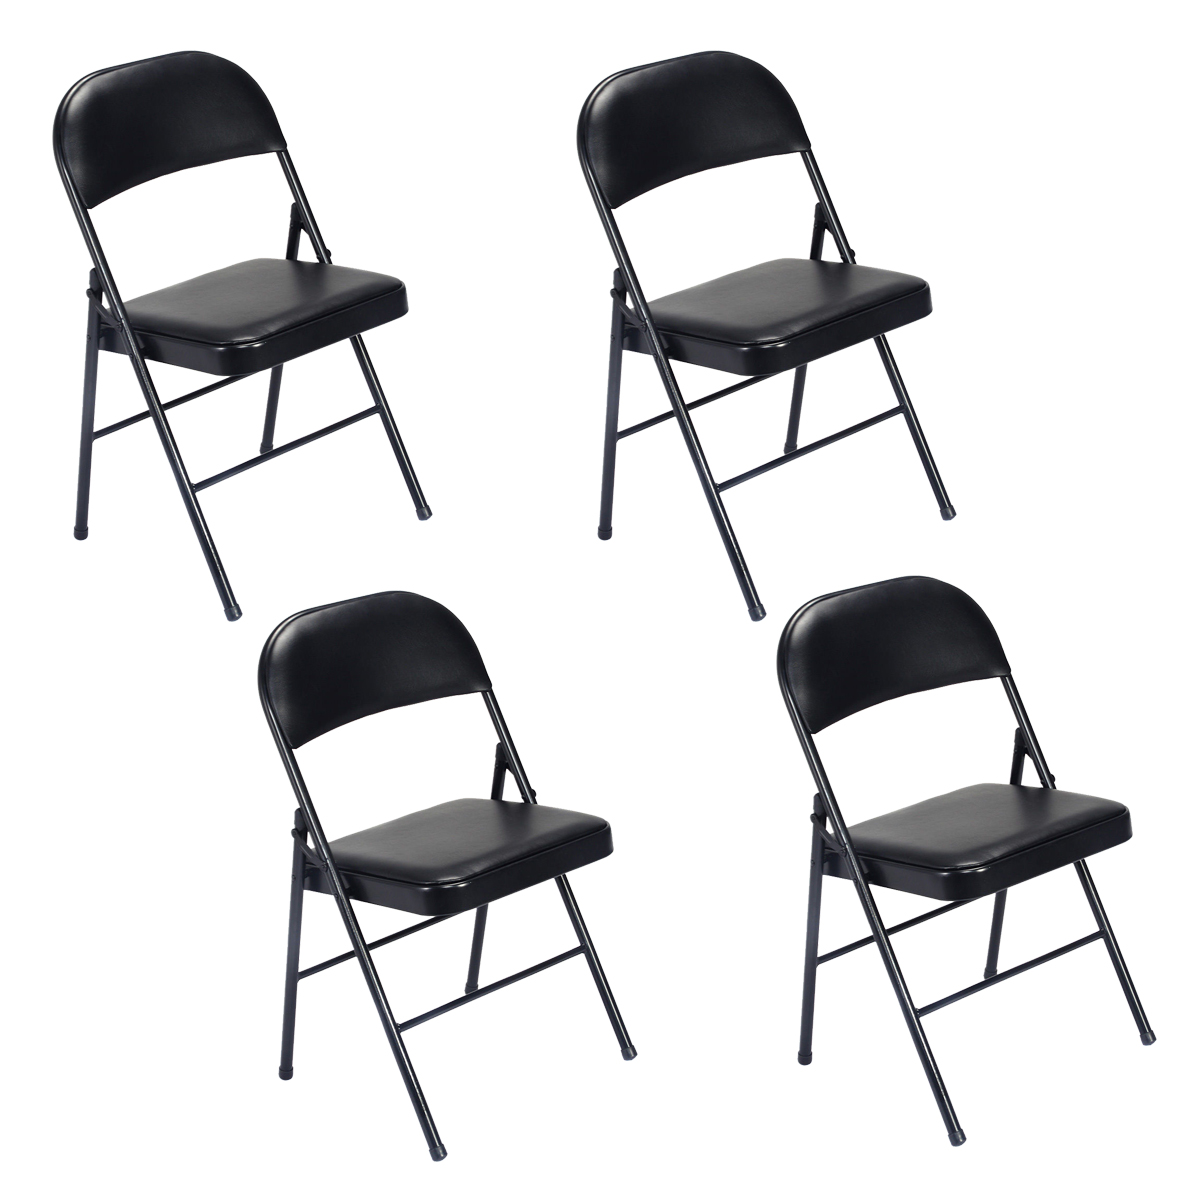 Fantastic Details About Set Of 4 6 Folding Chairs Fabric Upholstered Padded Seat Metal Frame Theyellowbook Wood Chair Design Ideas Theyellowbookinfo